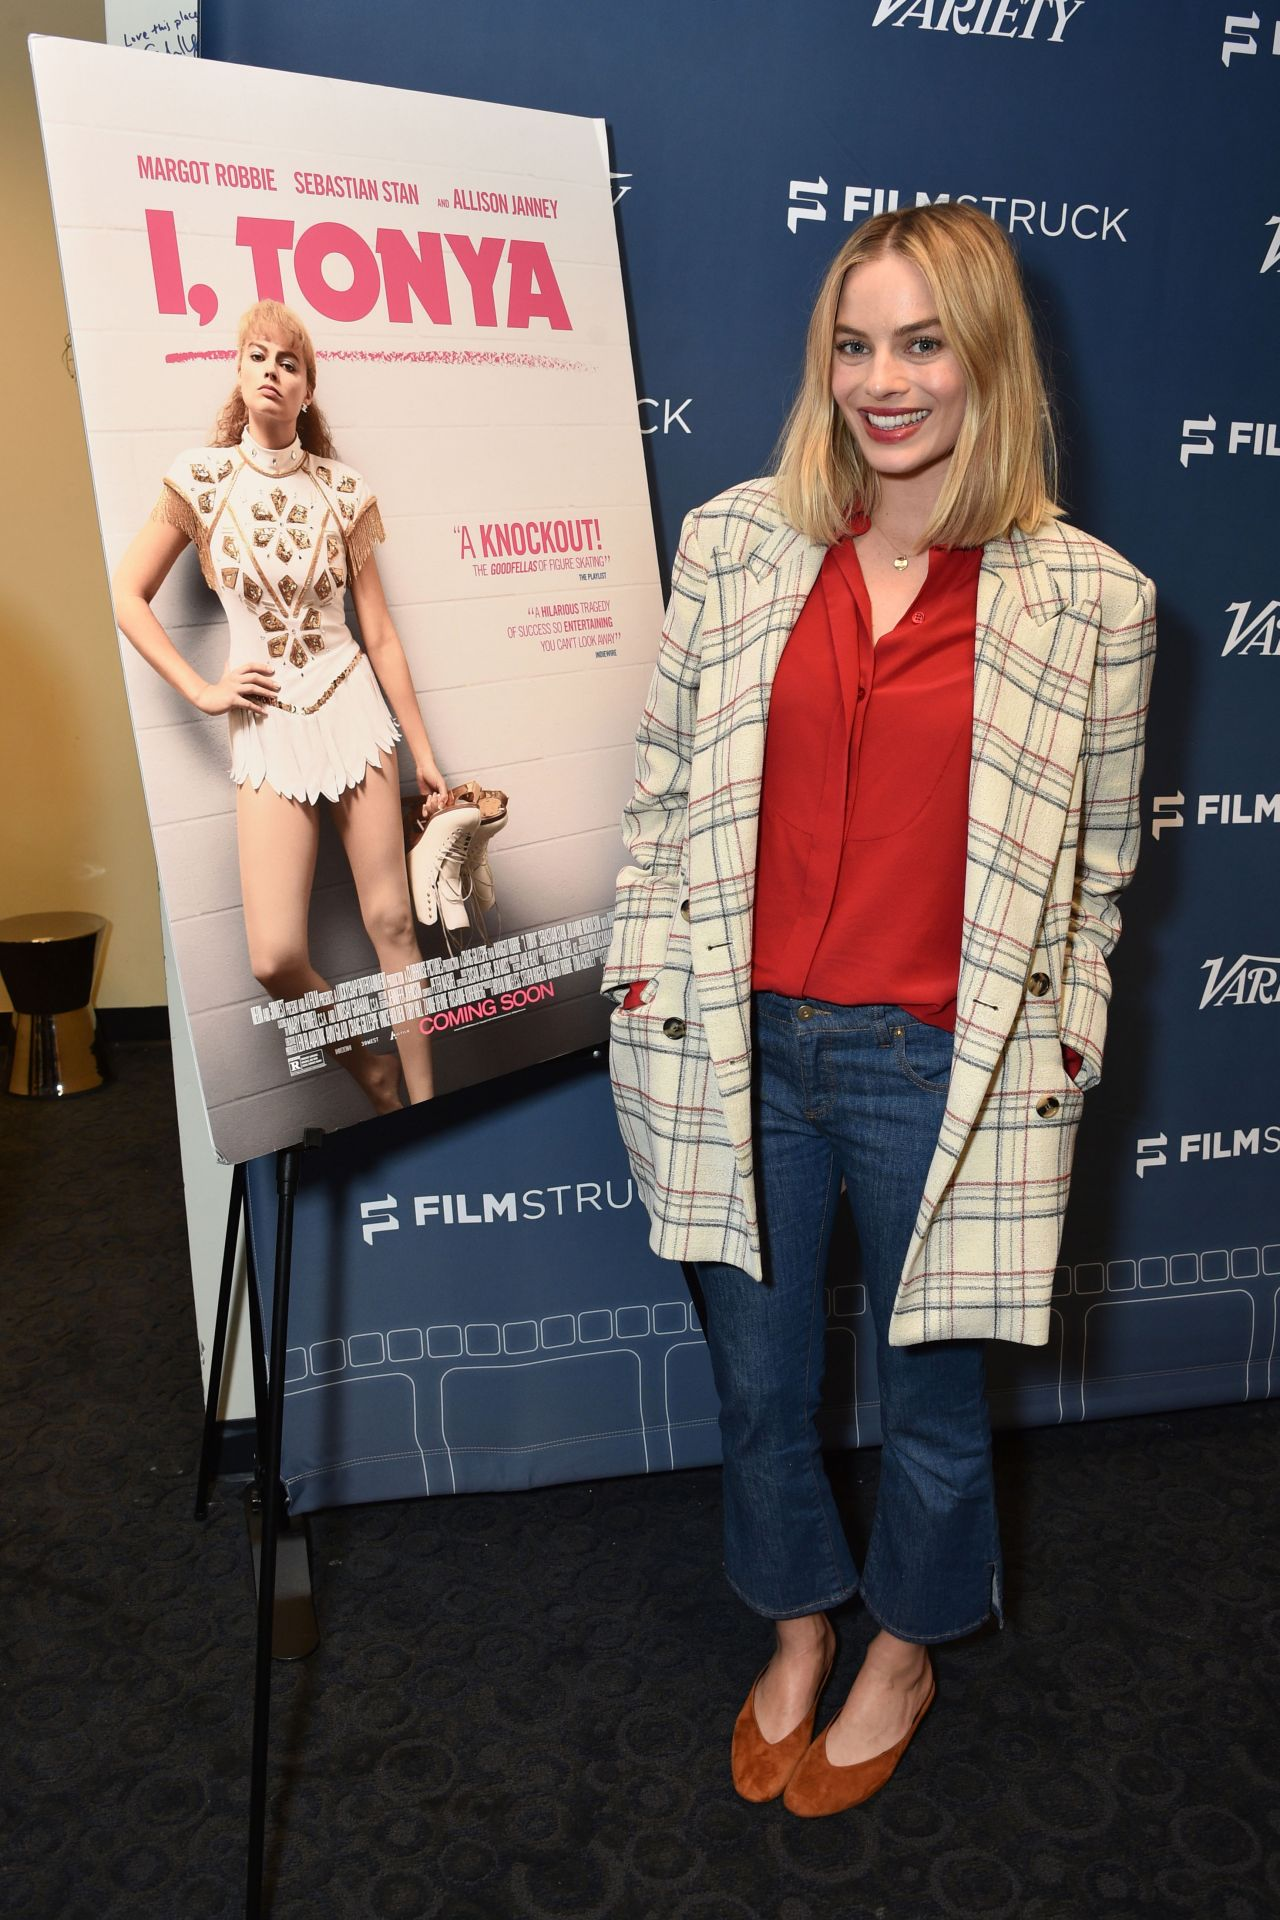 http://celebmafia.com/wp-content/uploads/2018/01/margot-robbie-i-tonya-screening-in-los-angeles-1.jpg